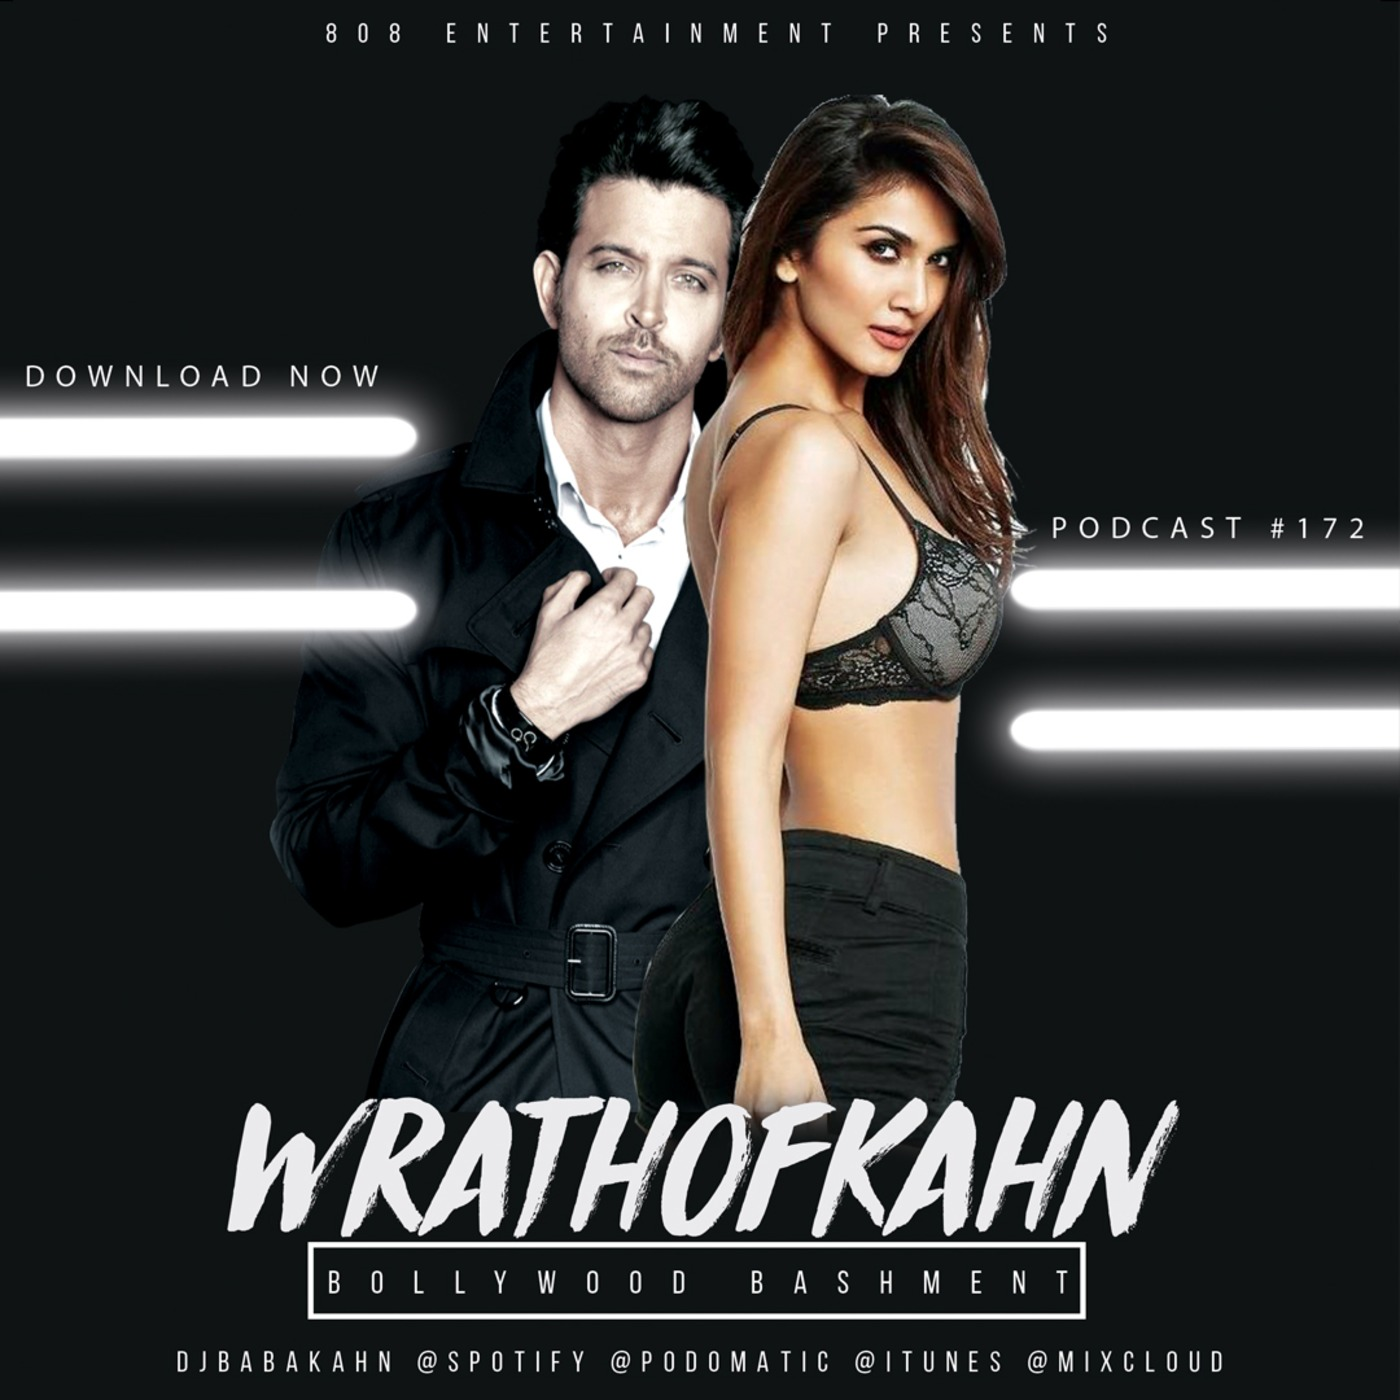 Wrath Of Kahn Bollywood Bashment DJ Baba Kahn 172 DJ BABA